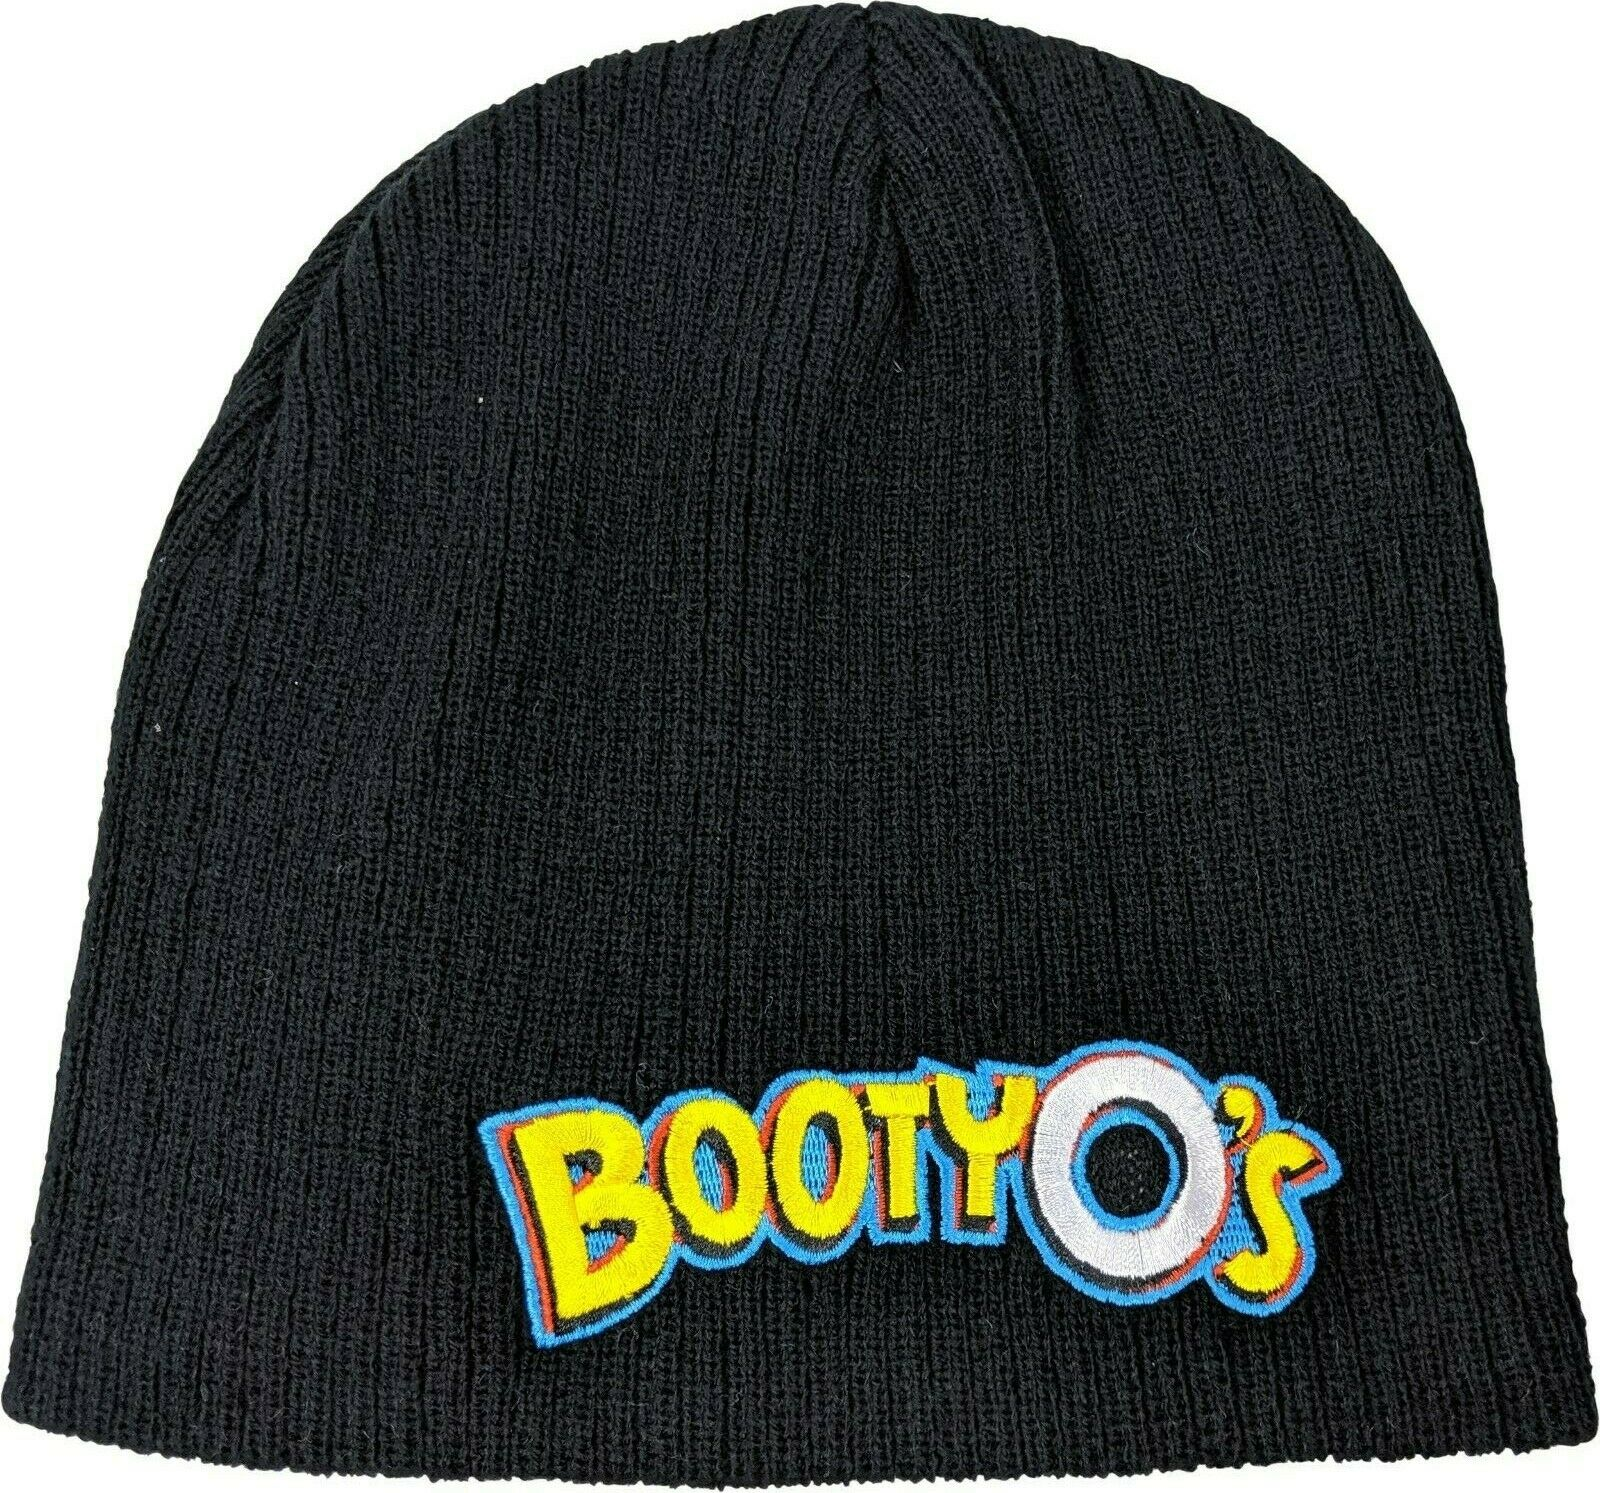 New Day BootyOs WWE Authentic Knit Beanie Cap Hat